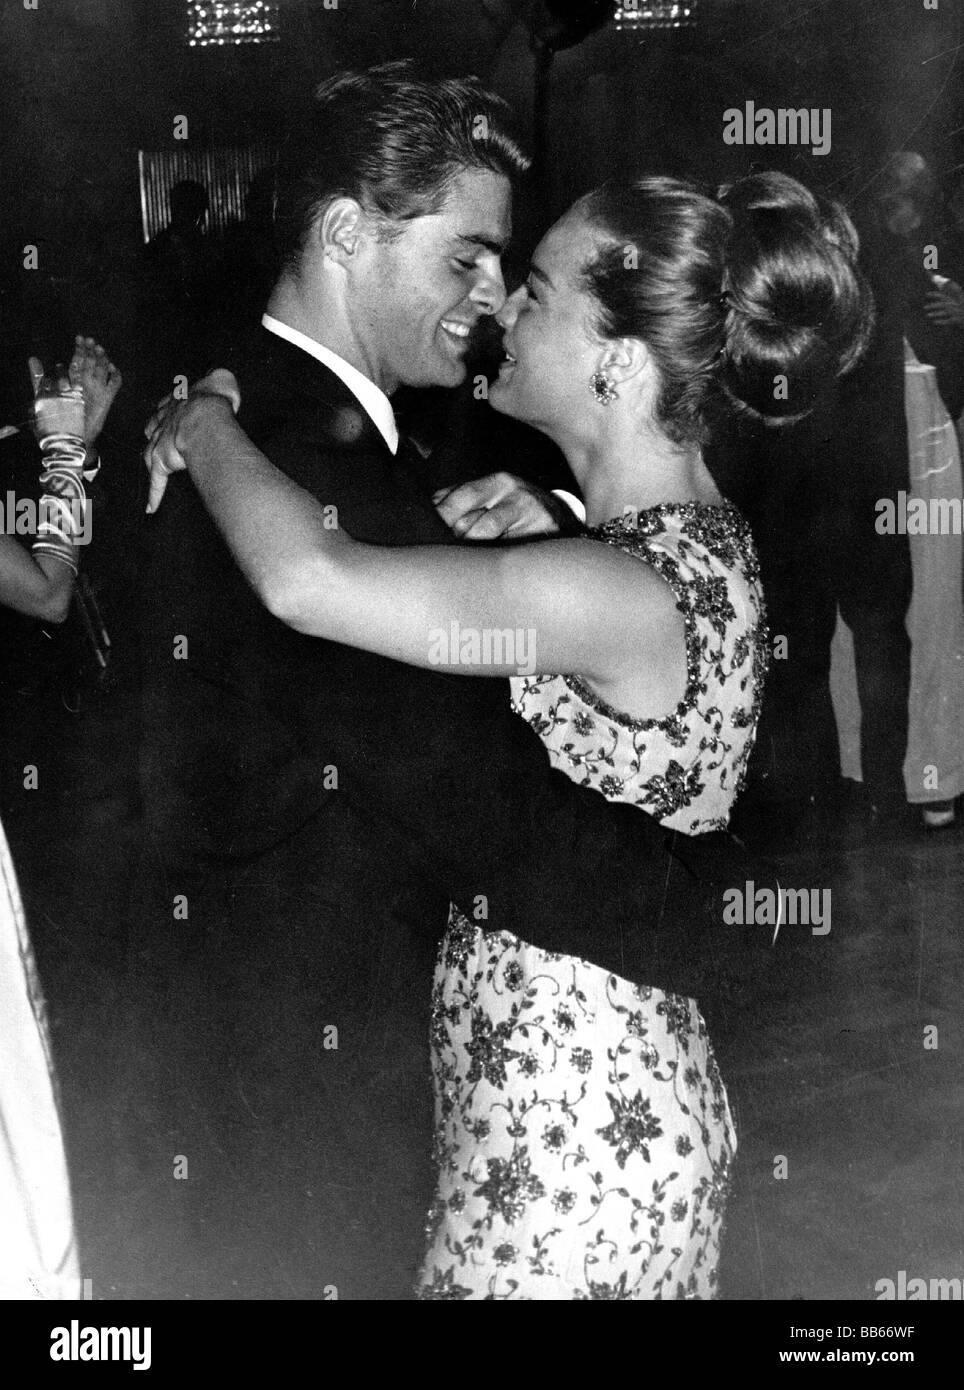 Schneider, Romy, 23.9.1938 - 29.5.1982, German actress, half length, with her brother Wolfgang Albach-Retty, dancing, - Stock Image